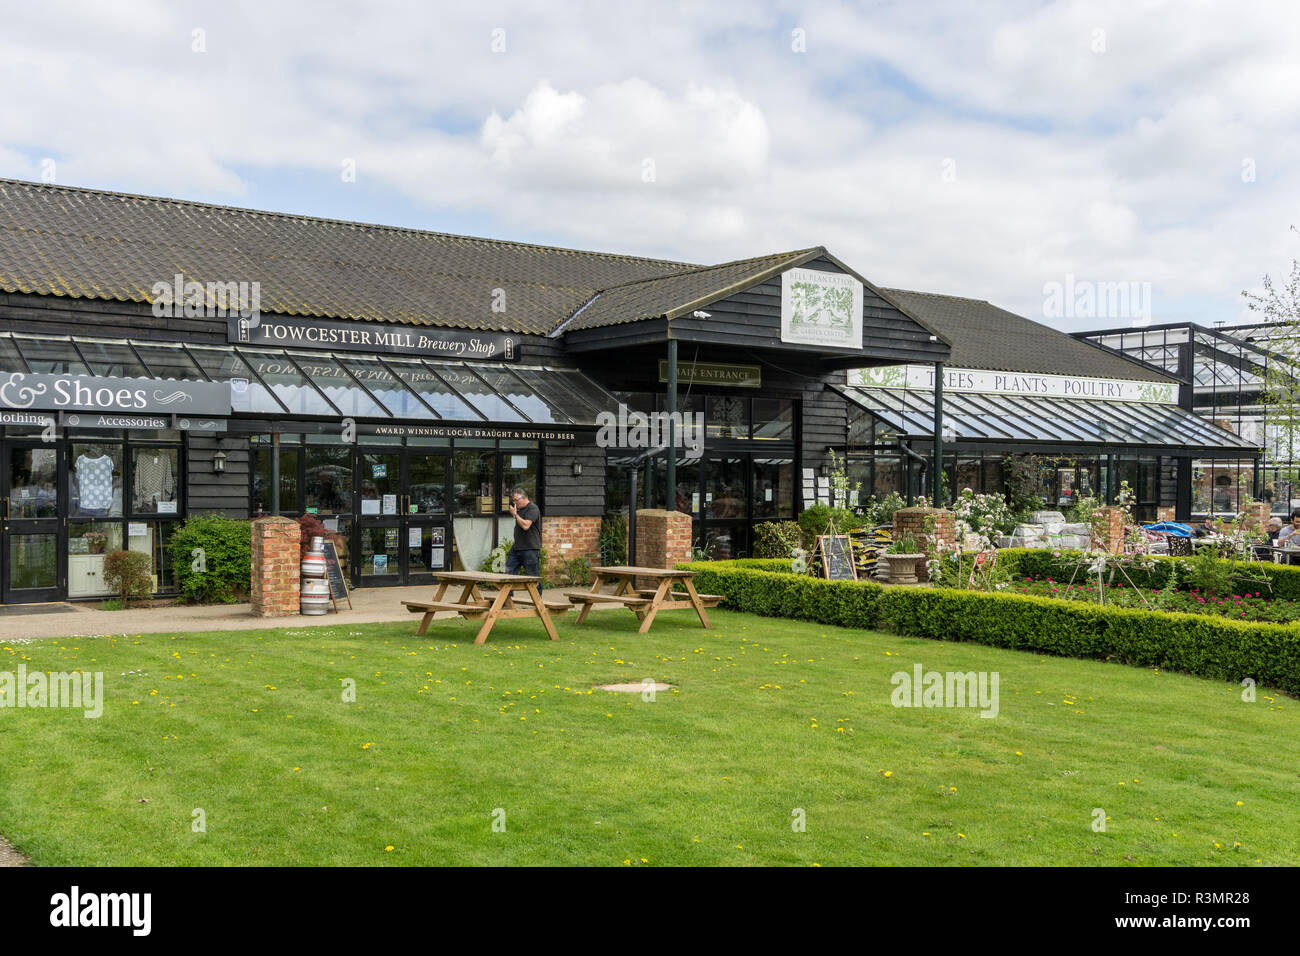 Bell Plantation, a small out of town retail village, comprising a large garden centre and a number of smaller outlets; Towcester, UK - Stock Image